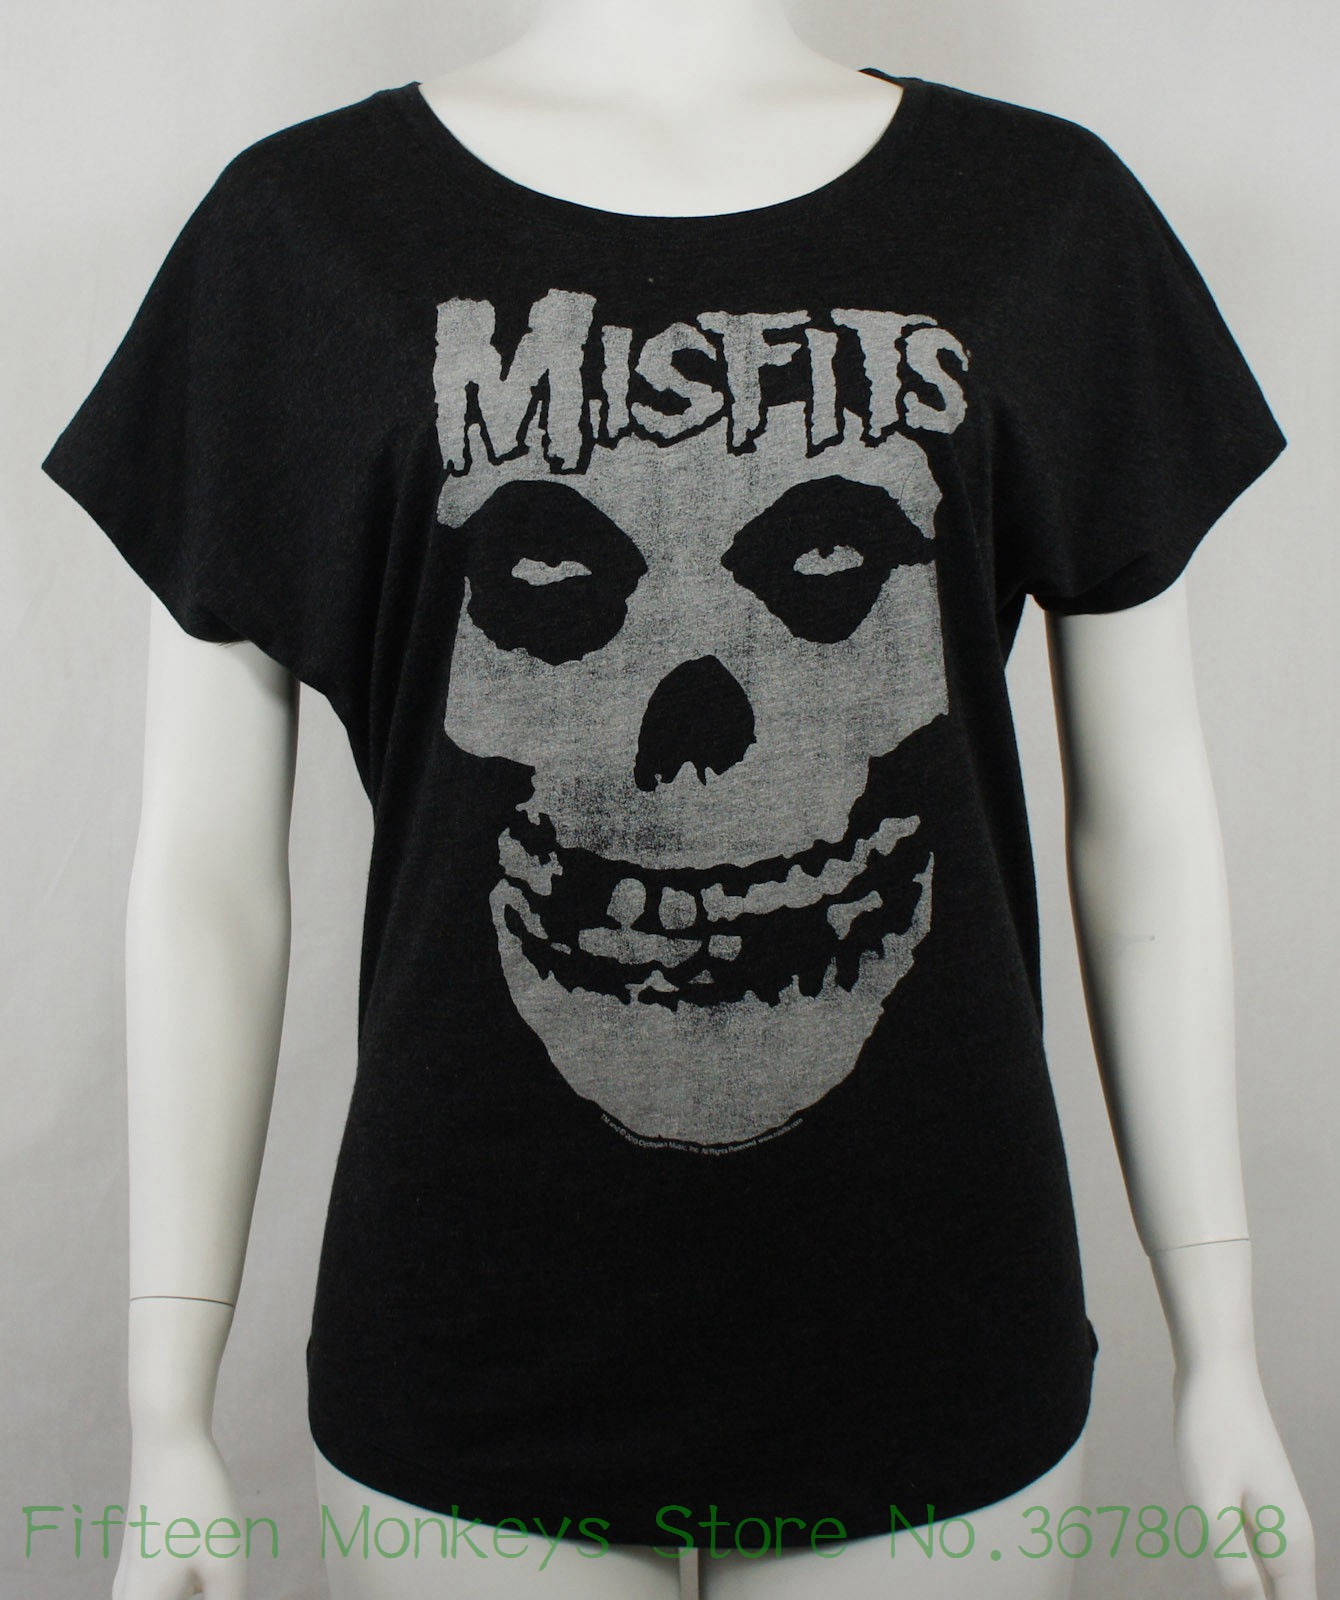 dc10a8b1 Buy skulls logo tees and get free shipping on AliExpress.com